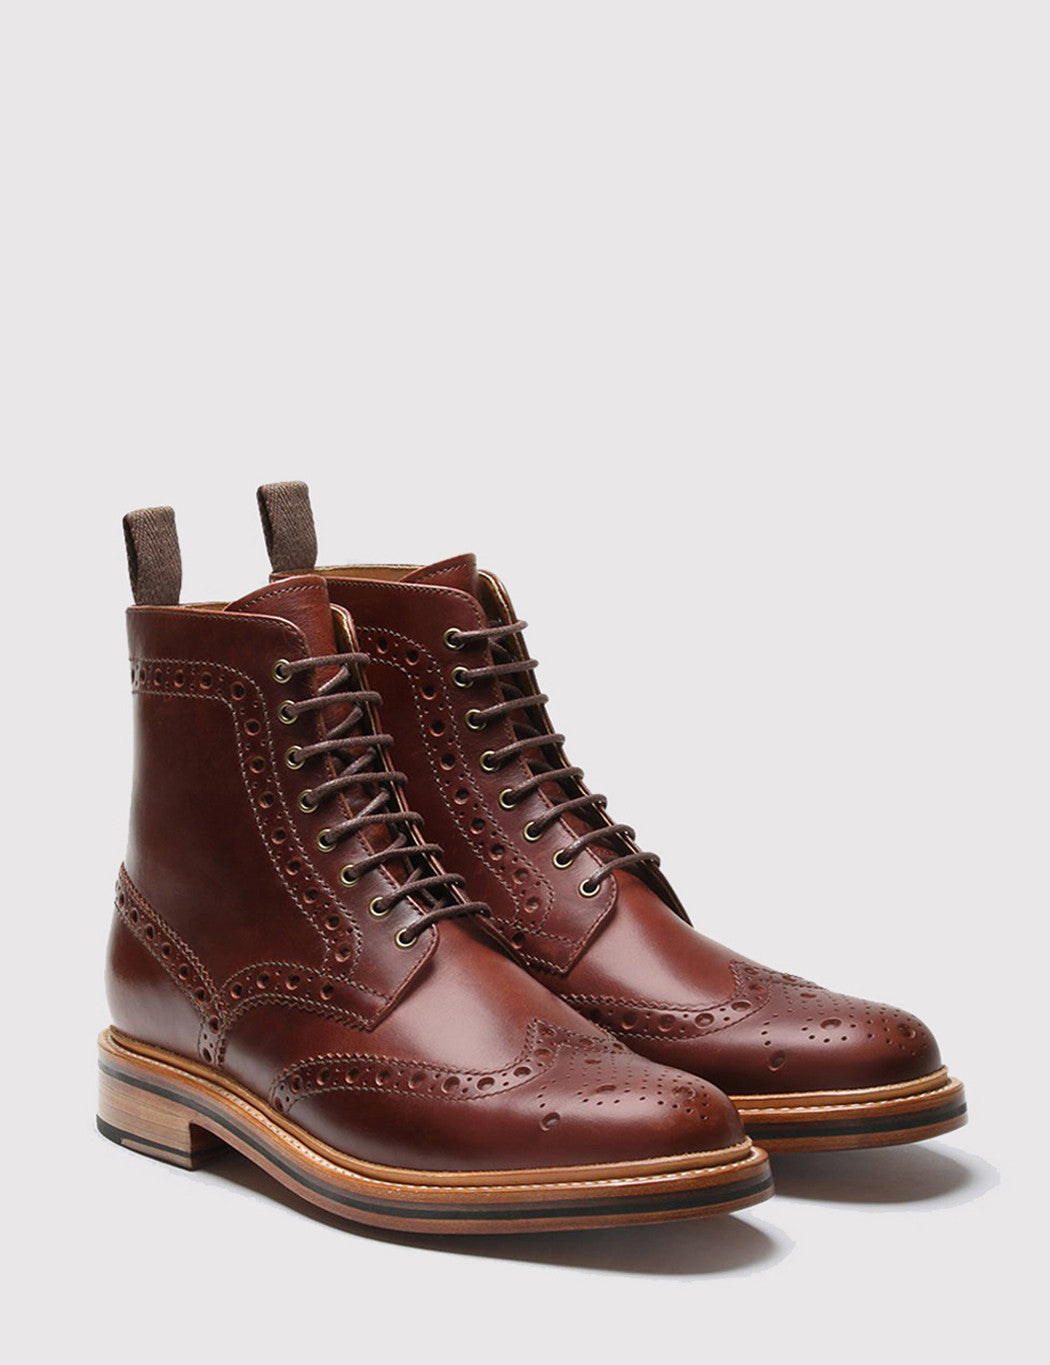 0d956a02dab ... Grenson Fred Brogue Boot - Chestnut Brown · Grenson